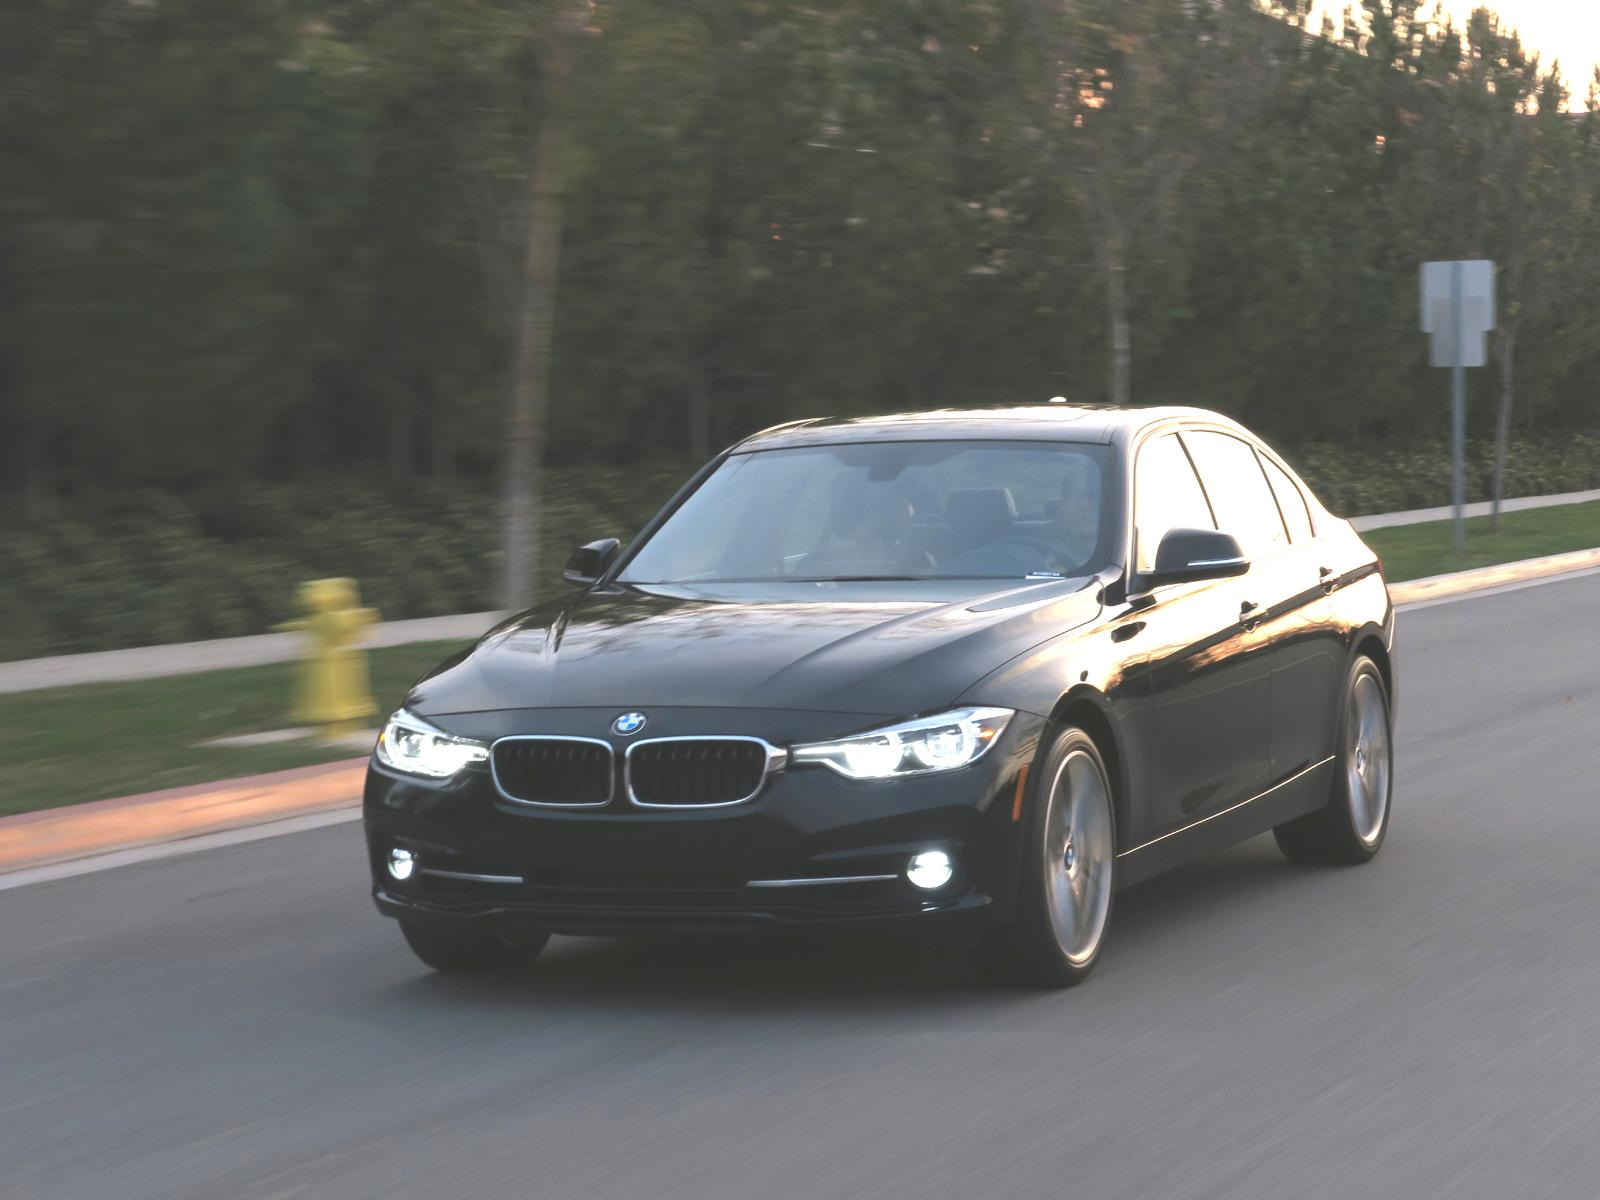 BMW_B58_Article_1